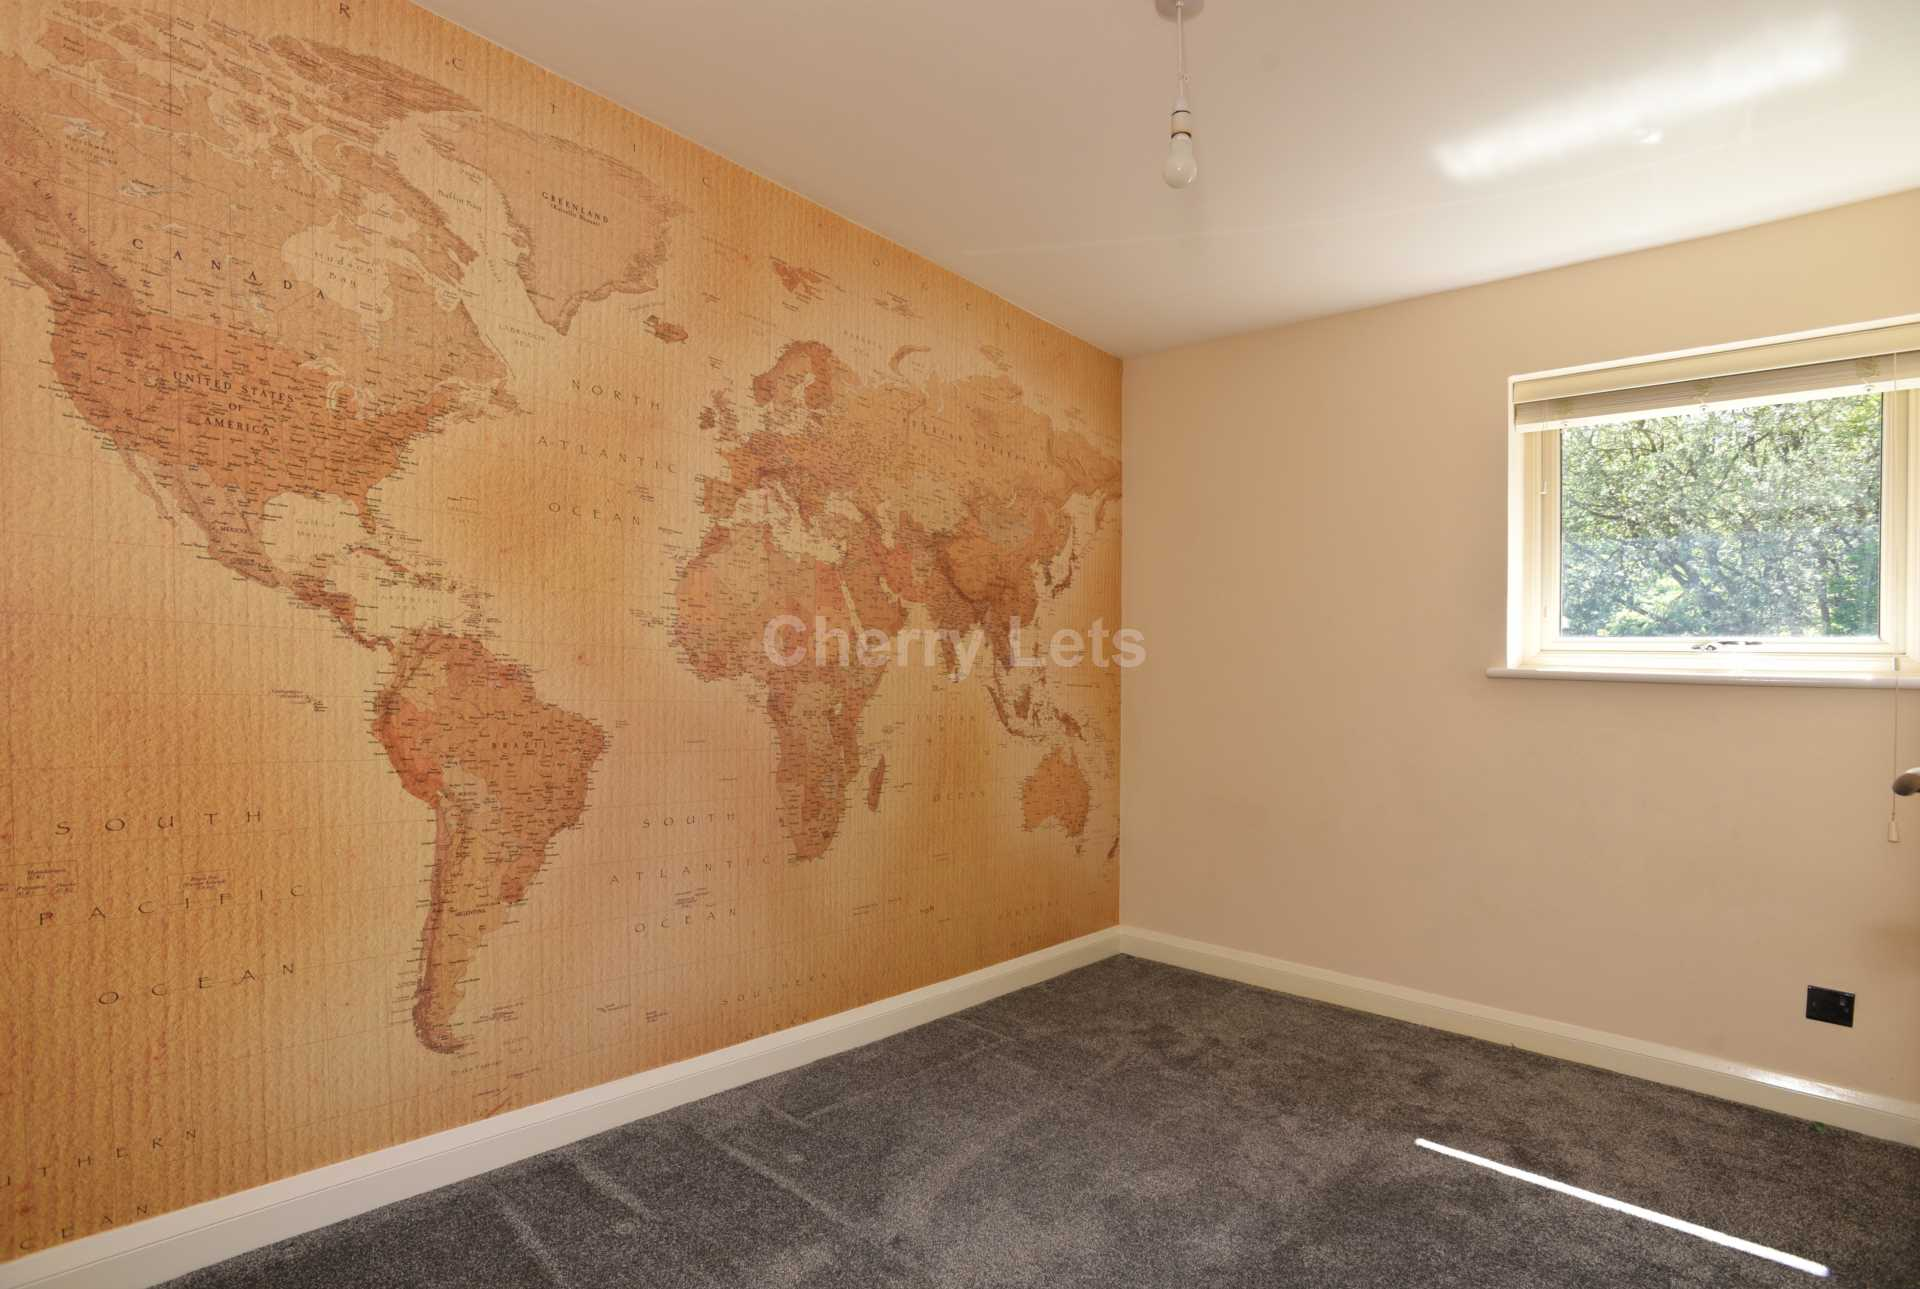 3 bed terraced house to rent in Keytes Close, Adderbury, OX17 8